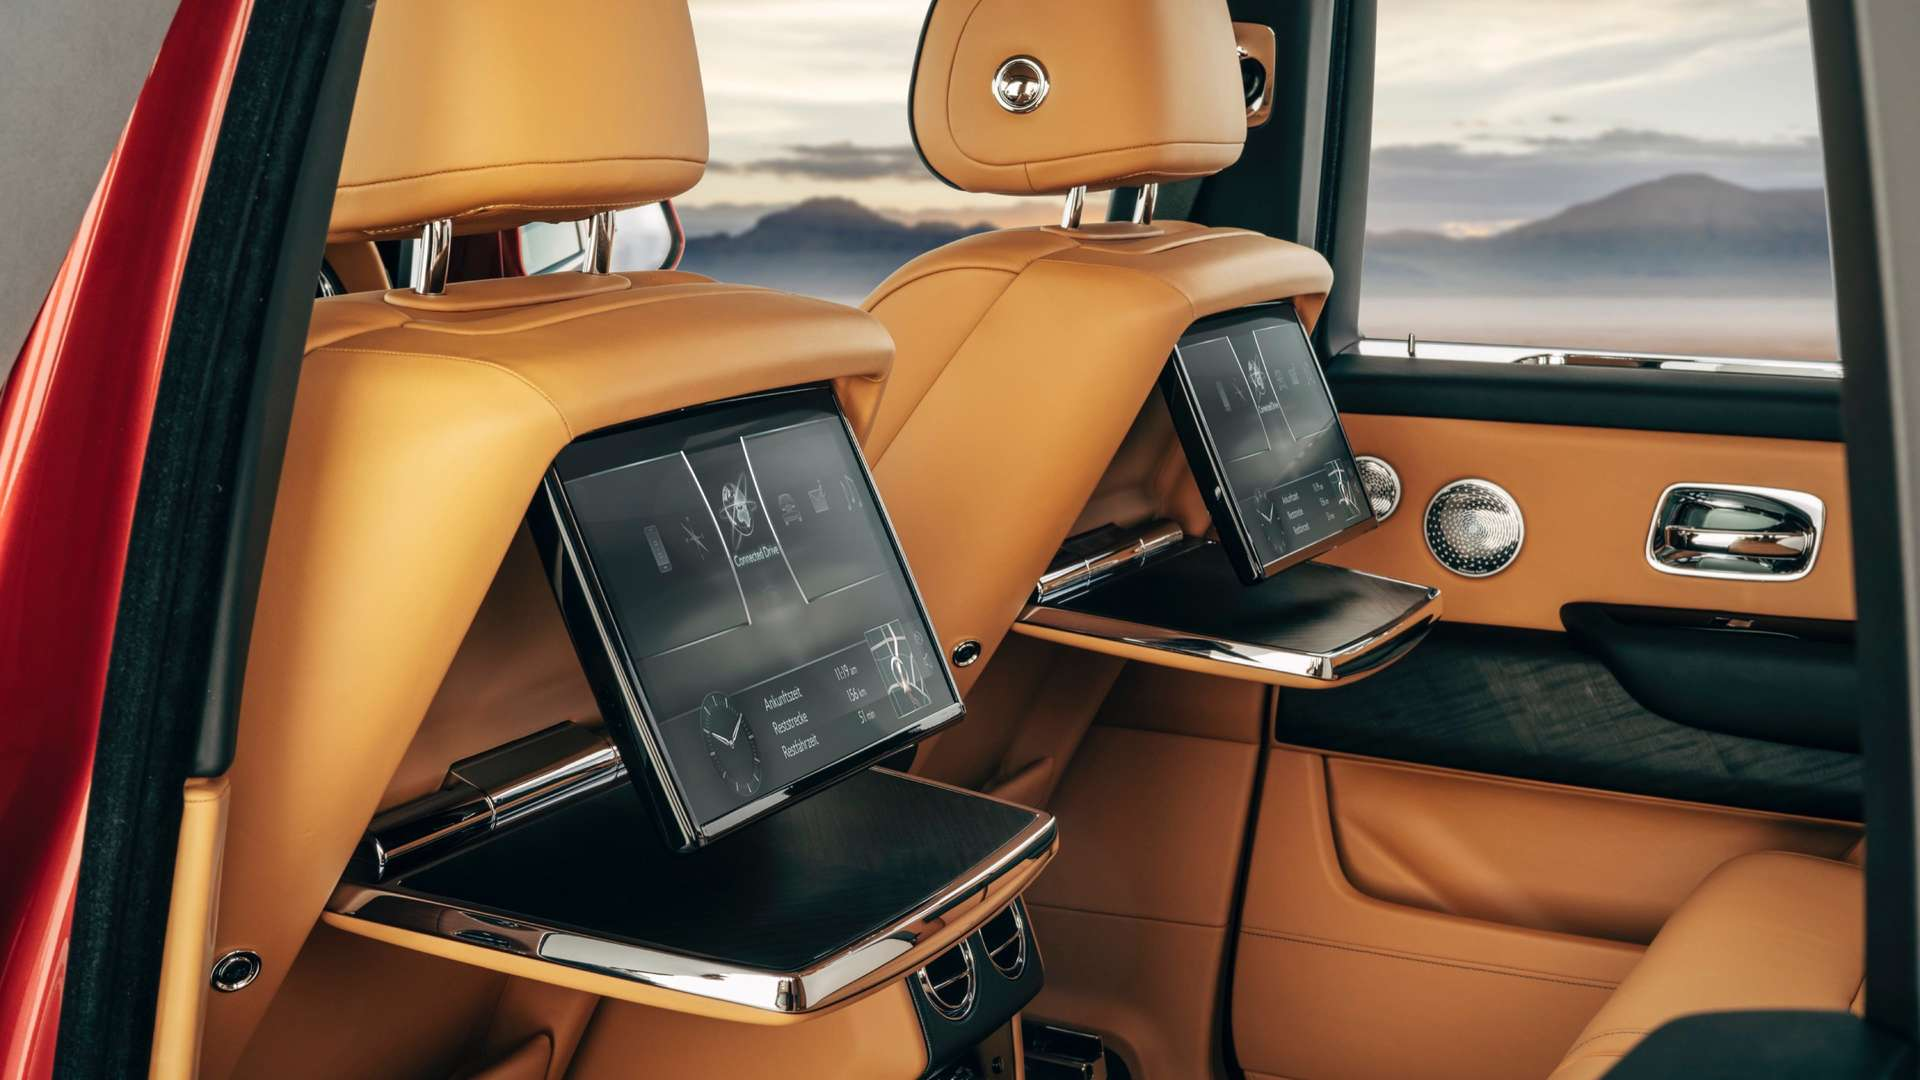 The rear TV screens in operation in the Rolls-Royce Cullinan.